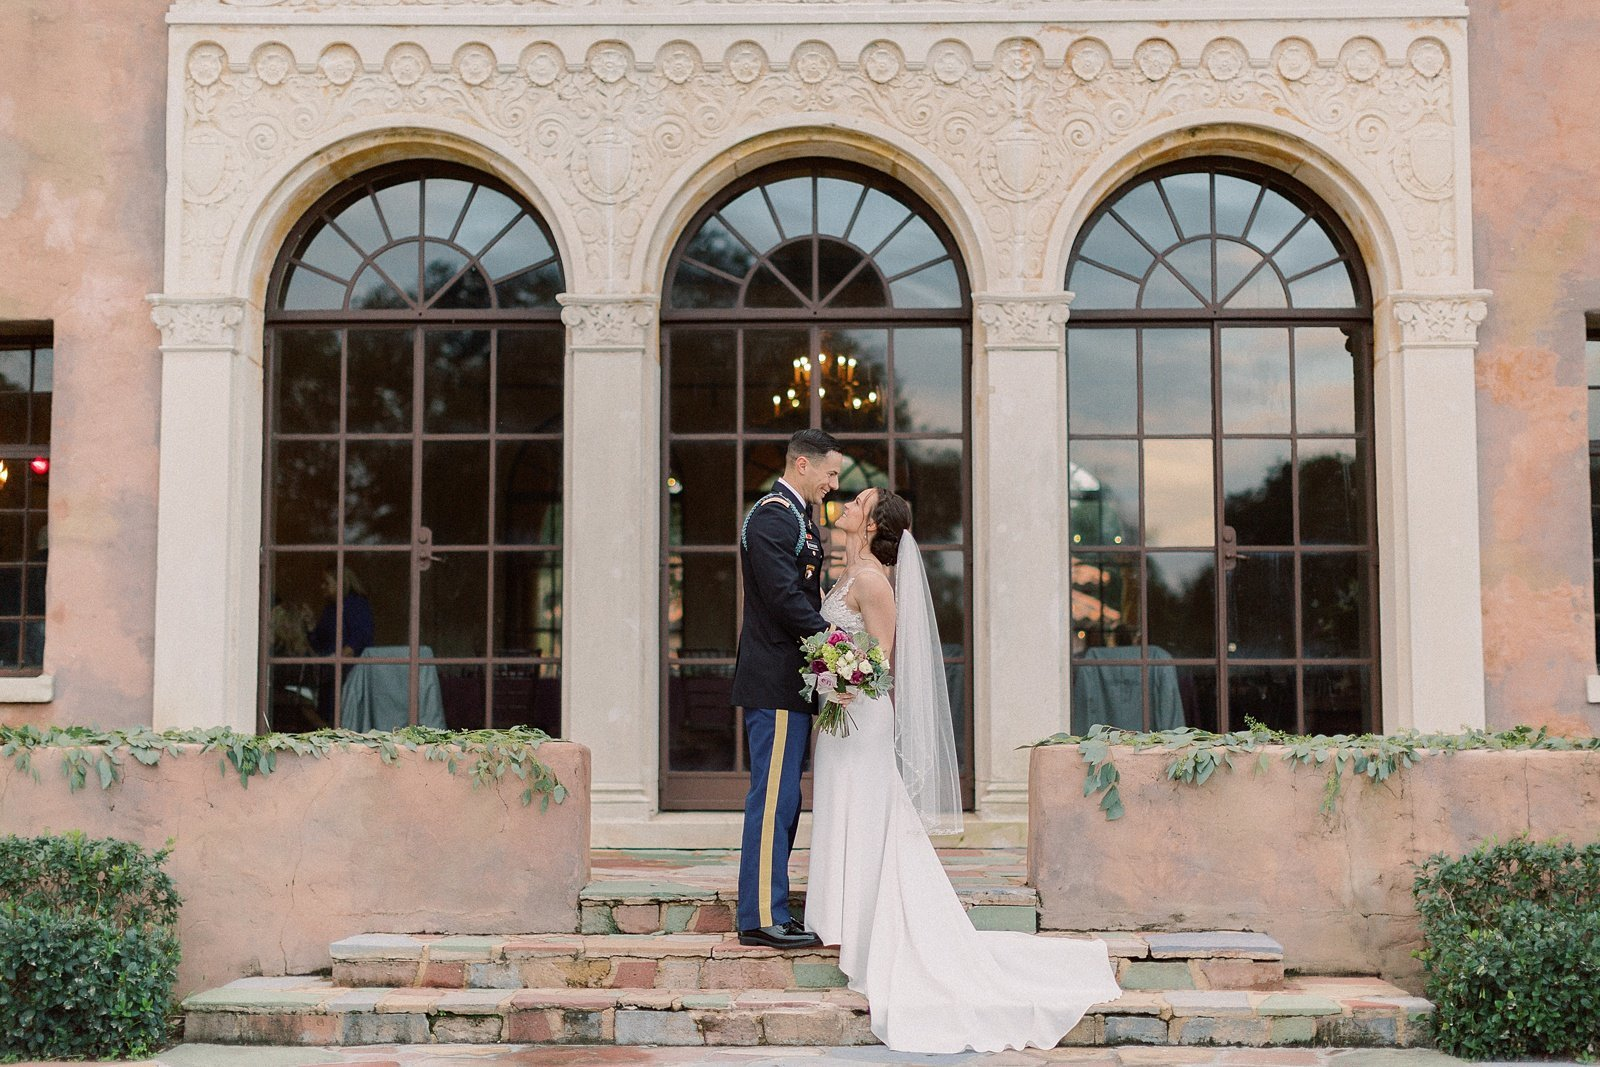 Melanie + Aaron Monkman Howey Mansion Howey in the Hills Florida Photographer Casie Marie Photography-584